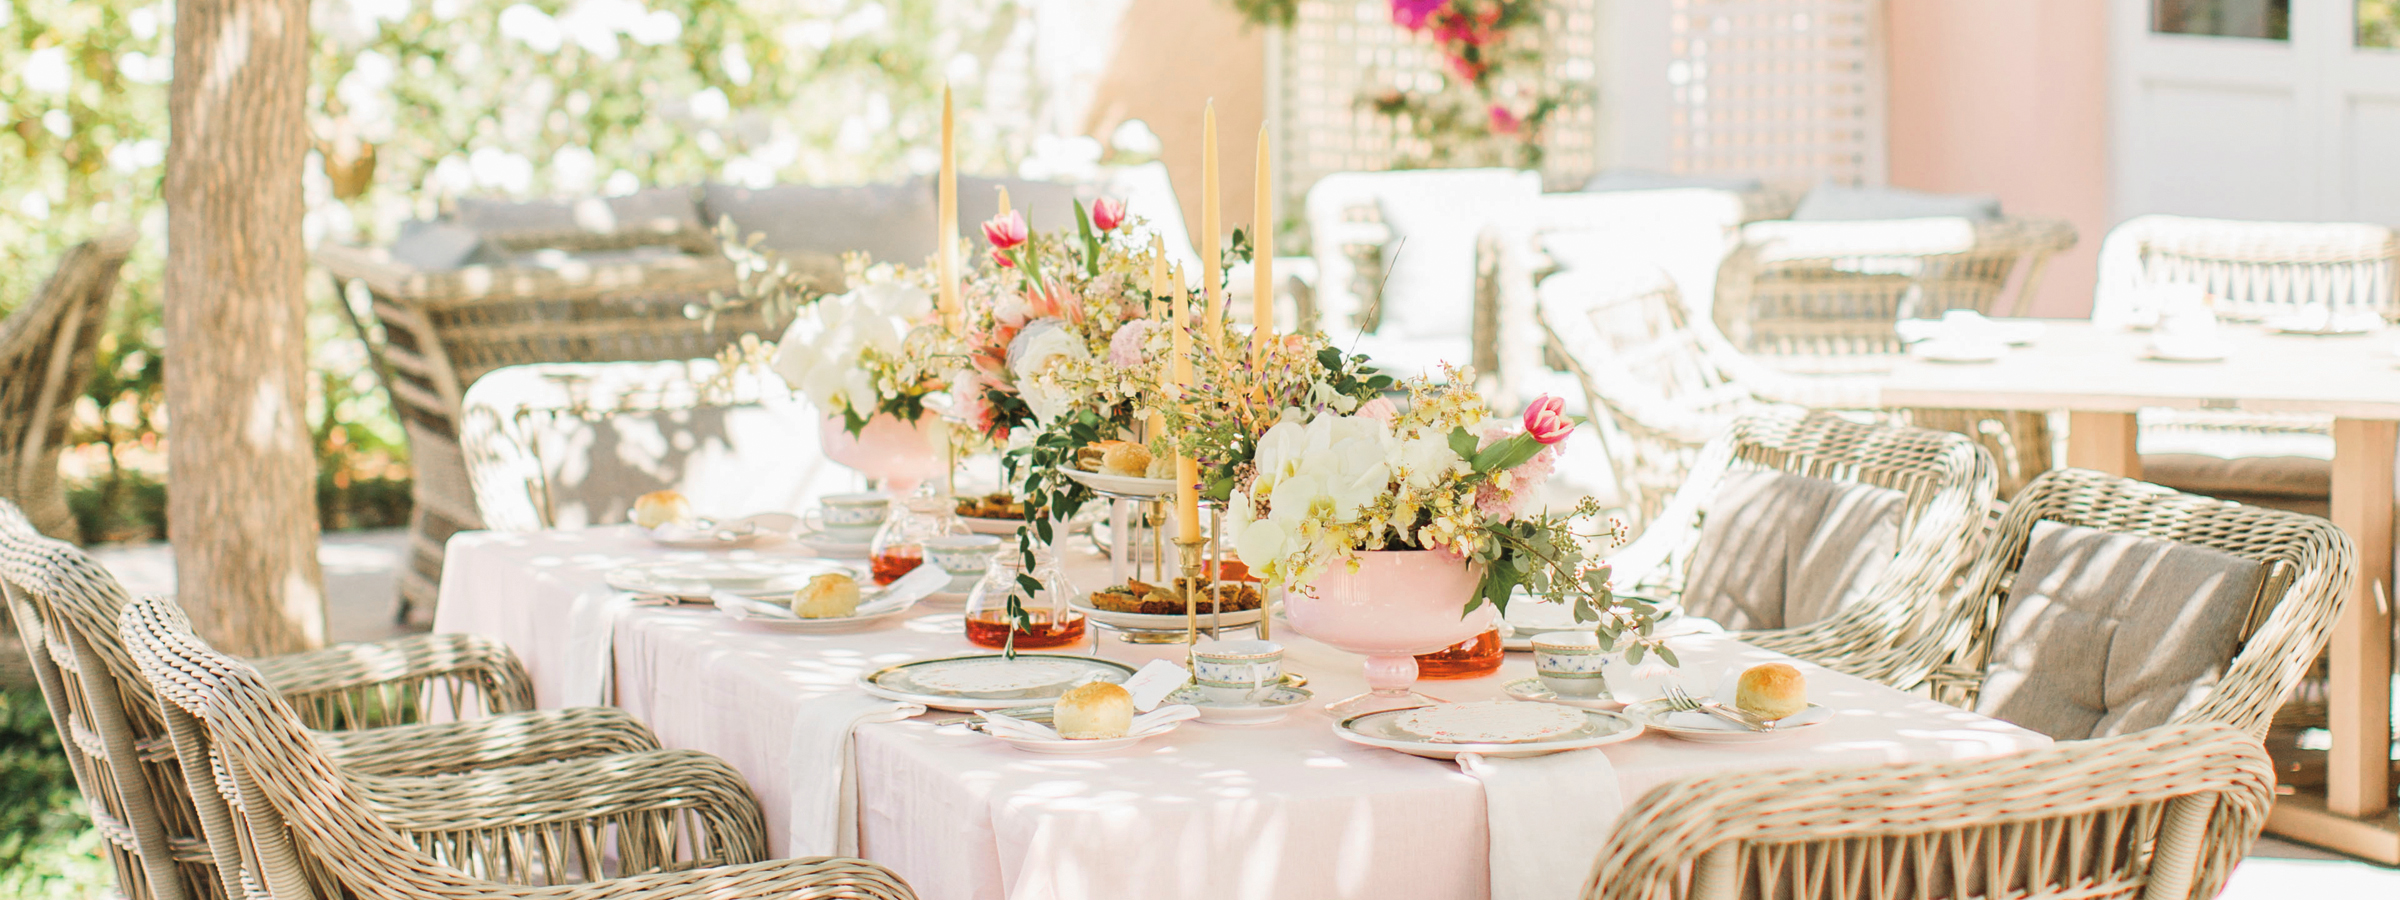 flutter magazine issue 16 – High Tea Party at Belmond Mount Nelson